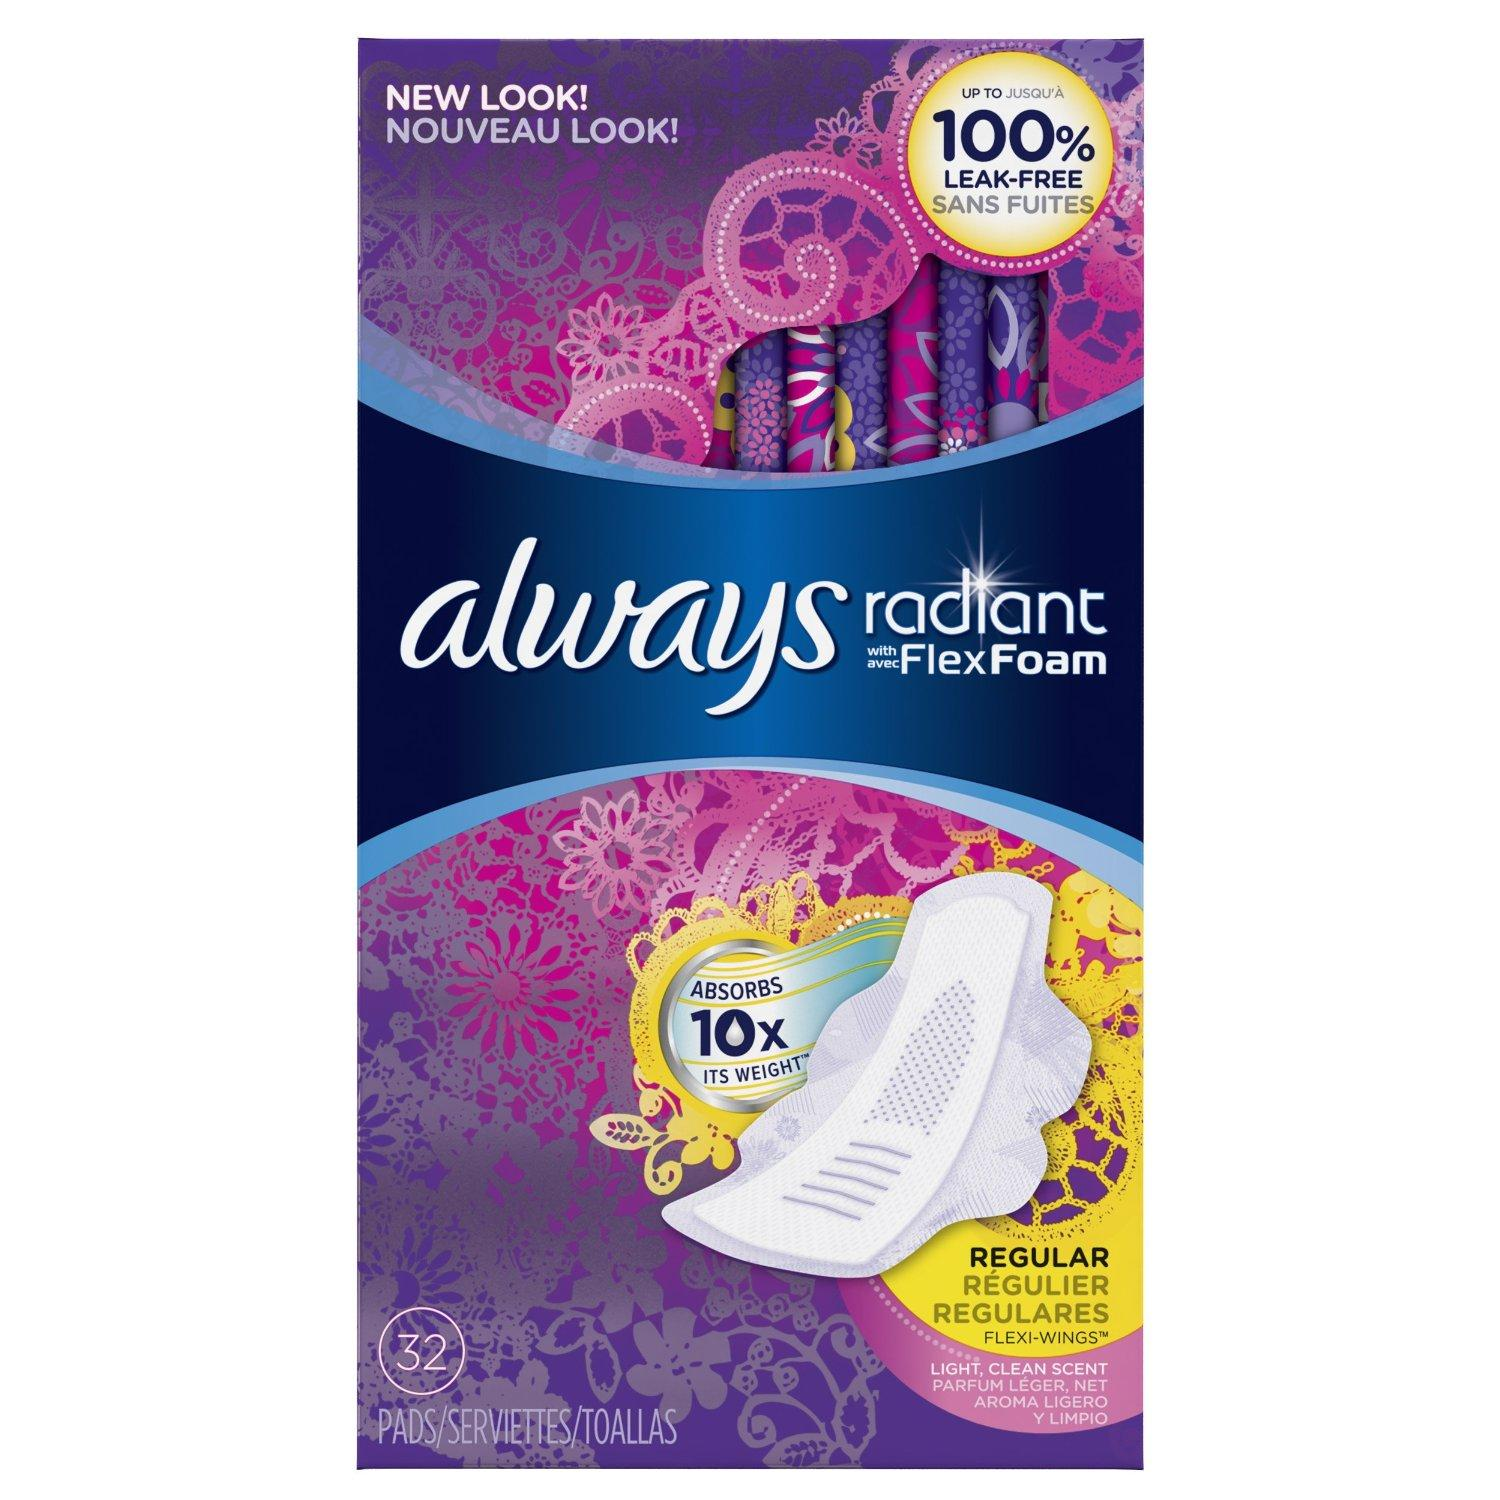 $2 Off Select Always Products @ Amazo...